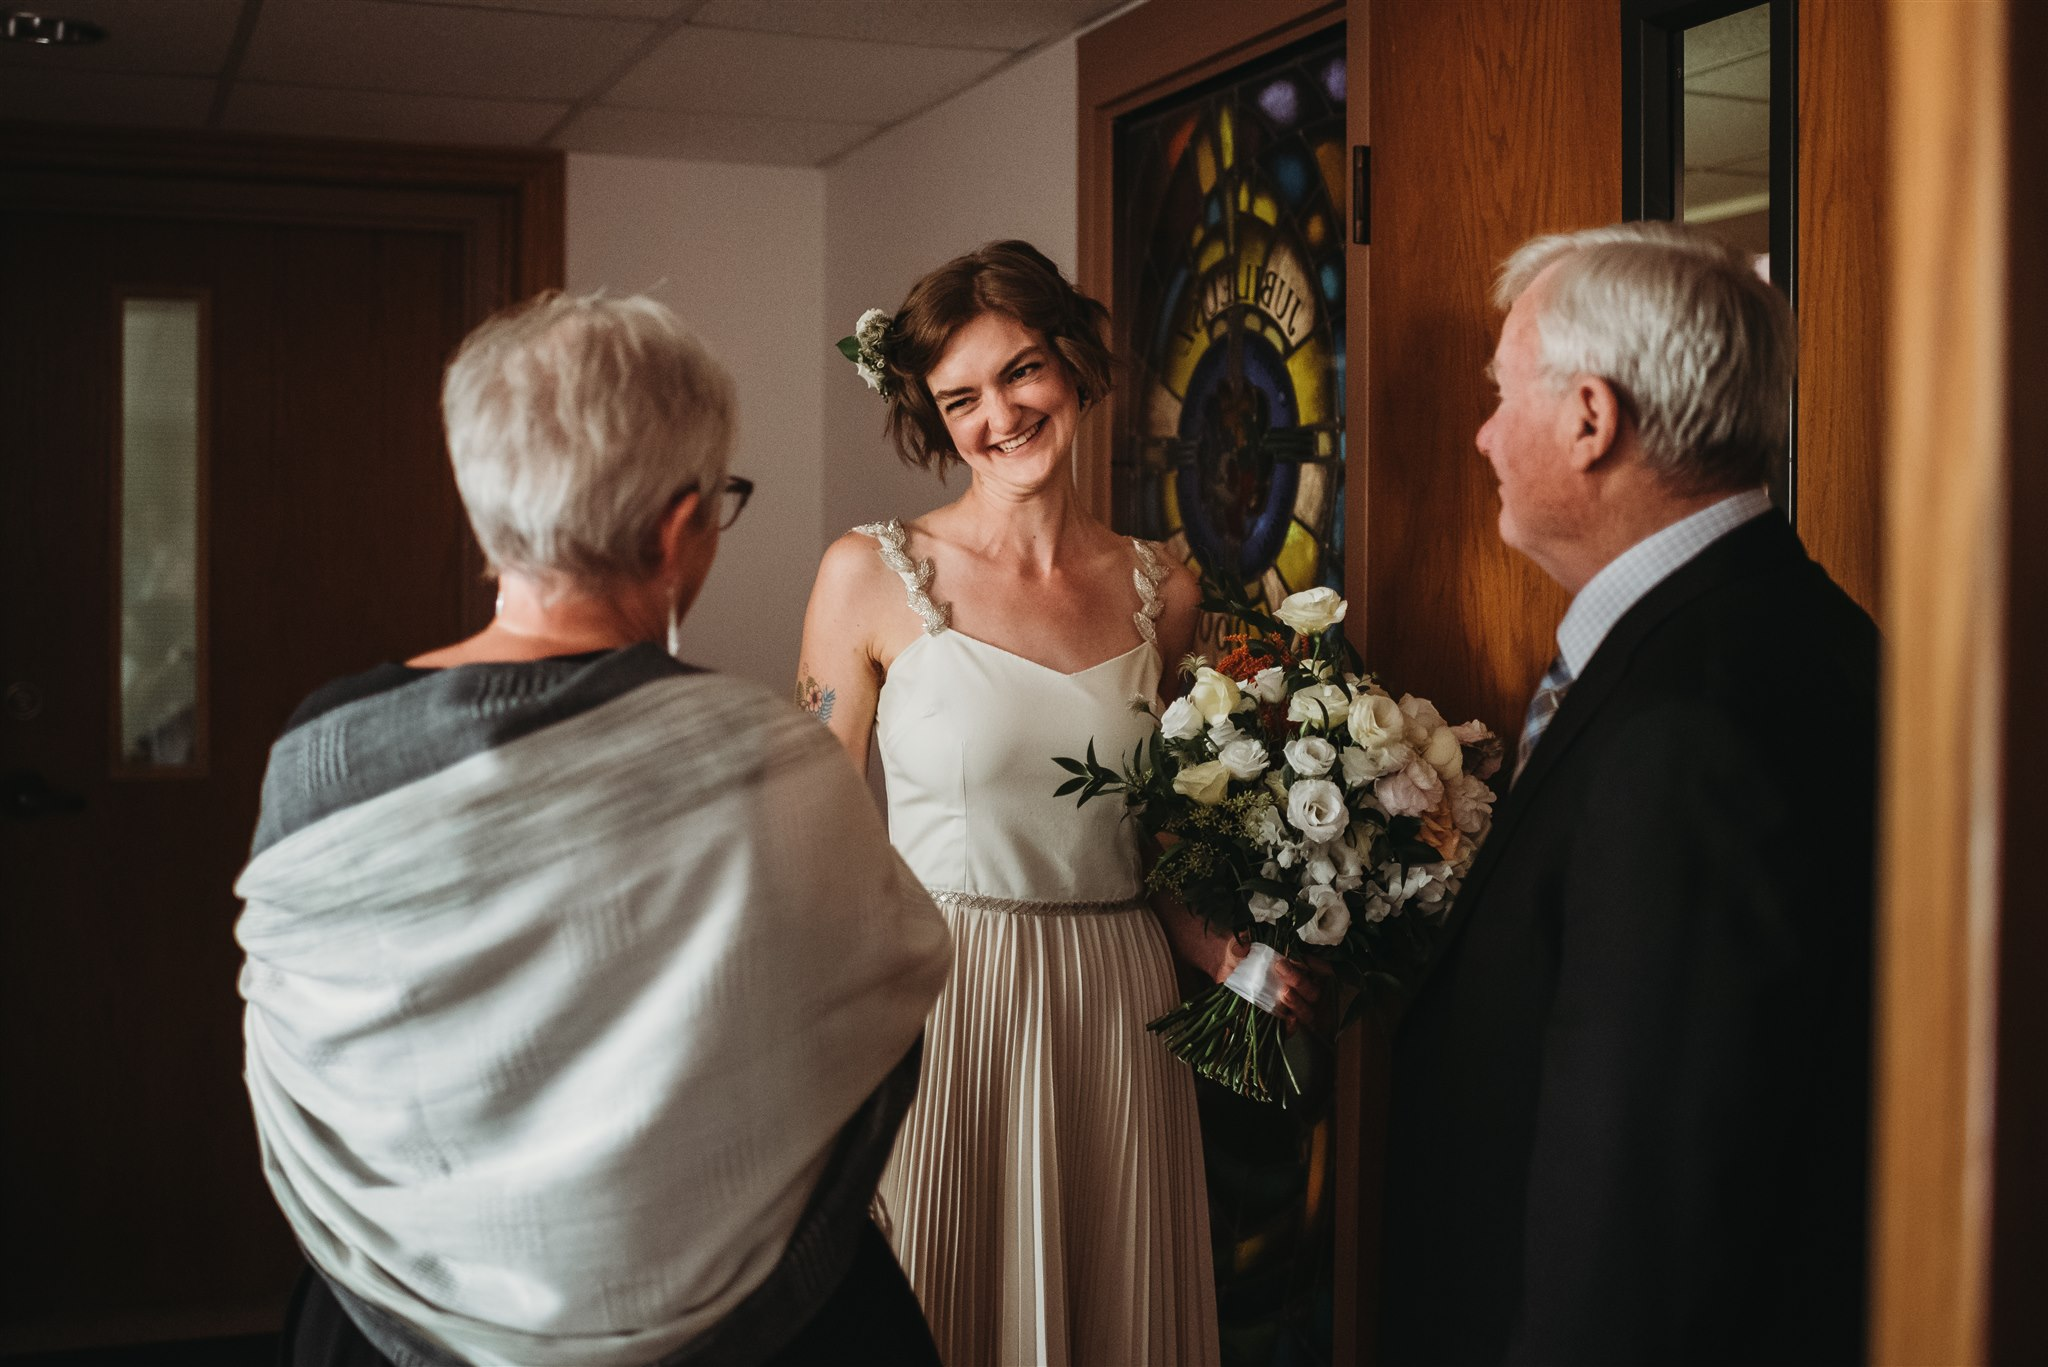 bride smiling happily after exiting the church